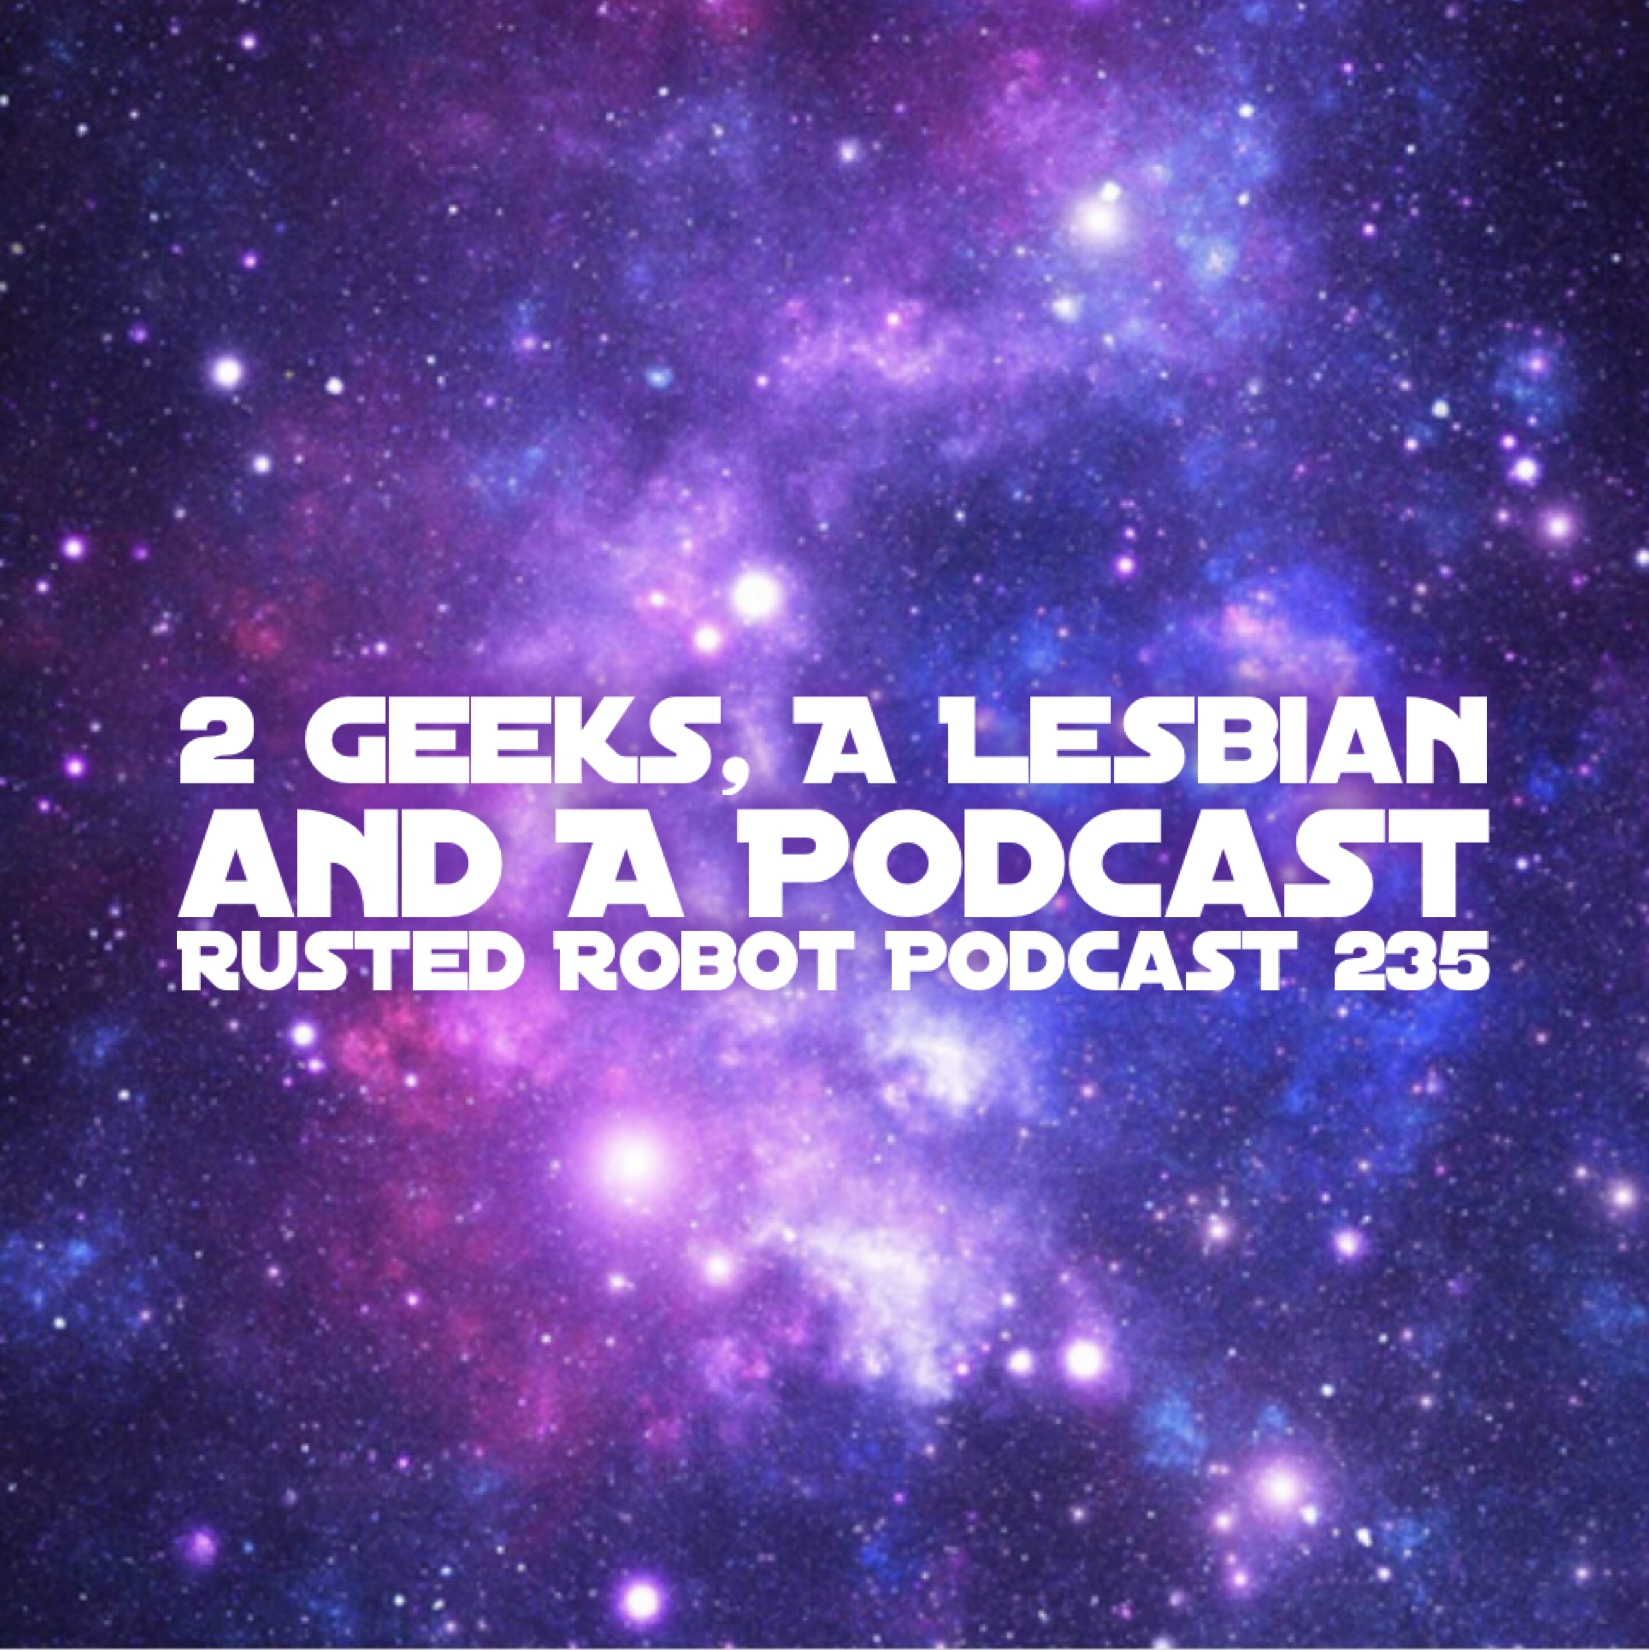 2 Geeks, A Lesbian and a Podcast - 235